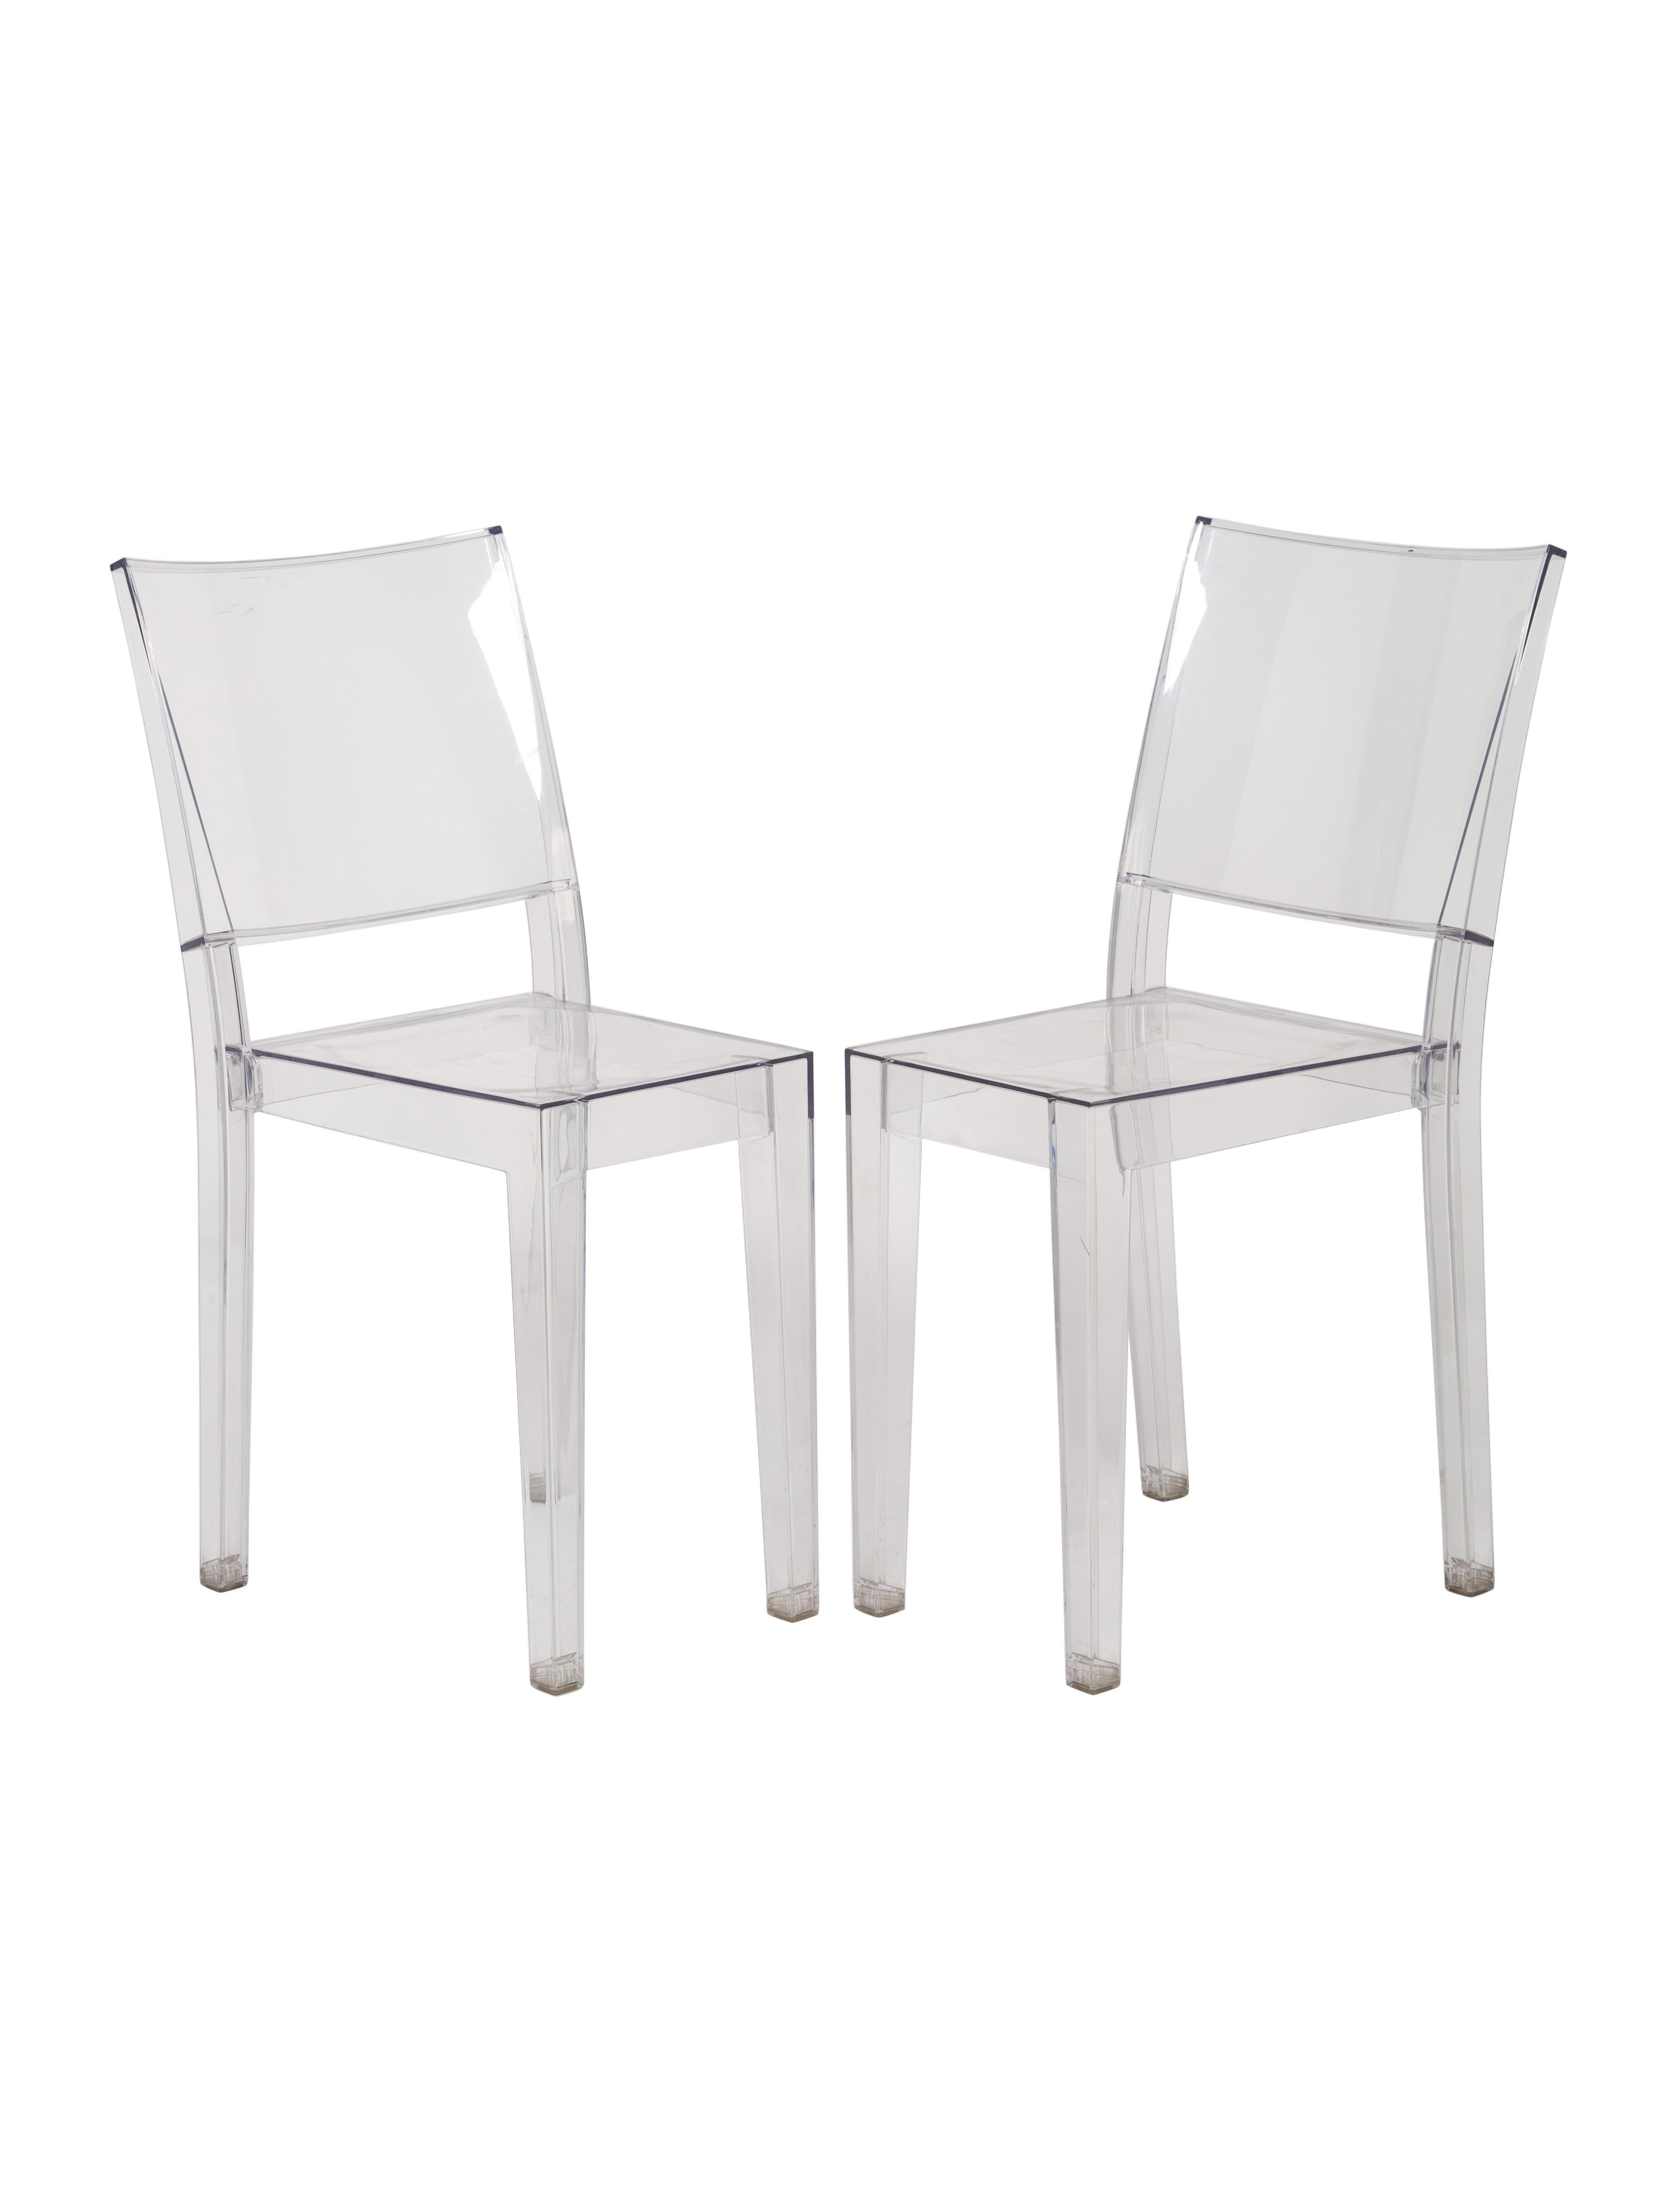 Philippe starck pair of kartell la marie chairs for Chaise la marie starck